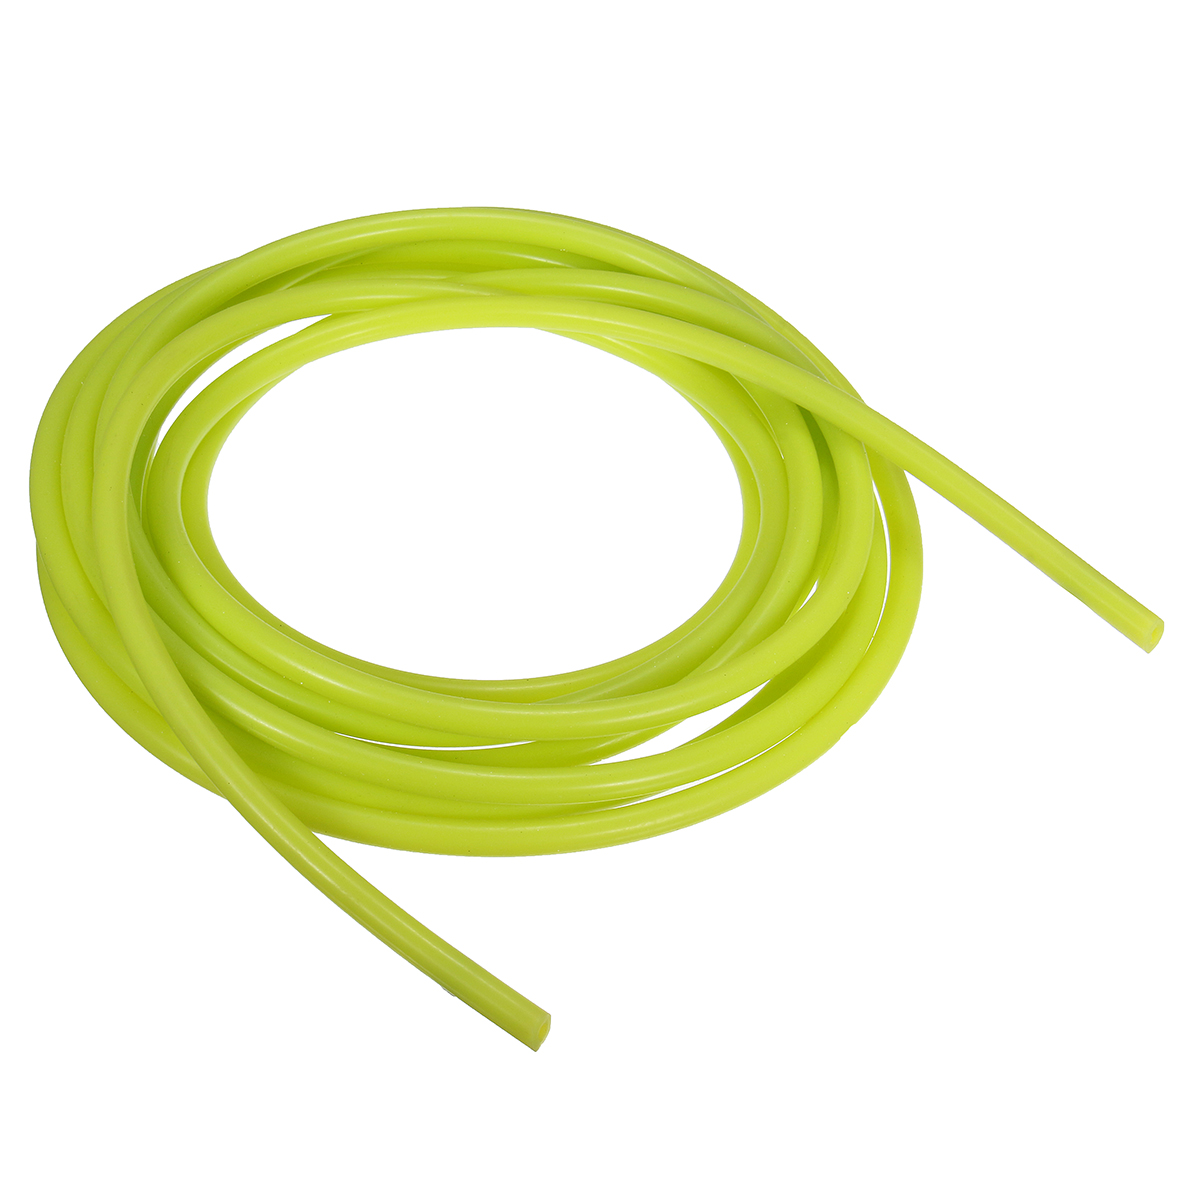 5m Length Silicone Vacuum Hose Tube Pipe Tubing Yellow Green 4mm ID 8mm OD